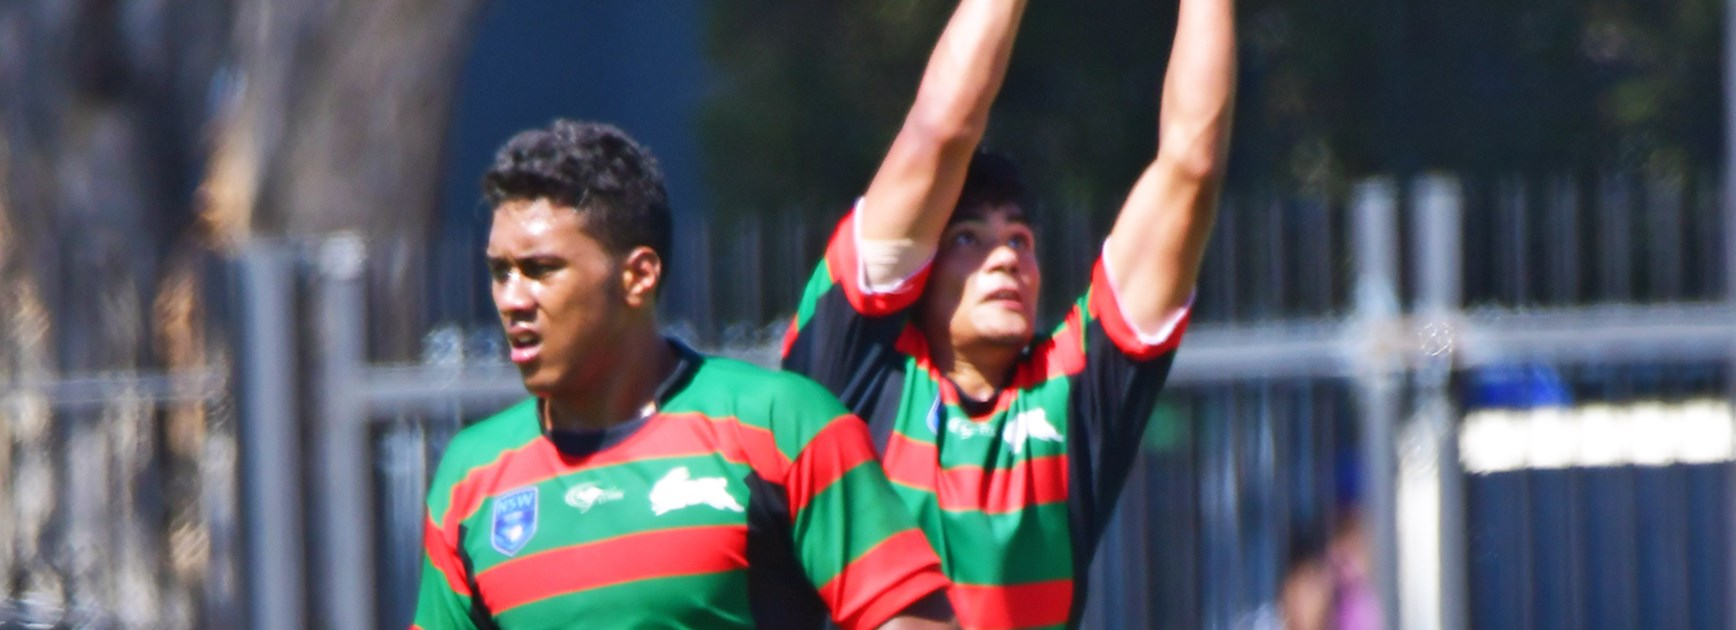 Souths Juniors searching for coaches